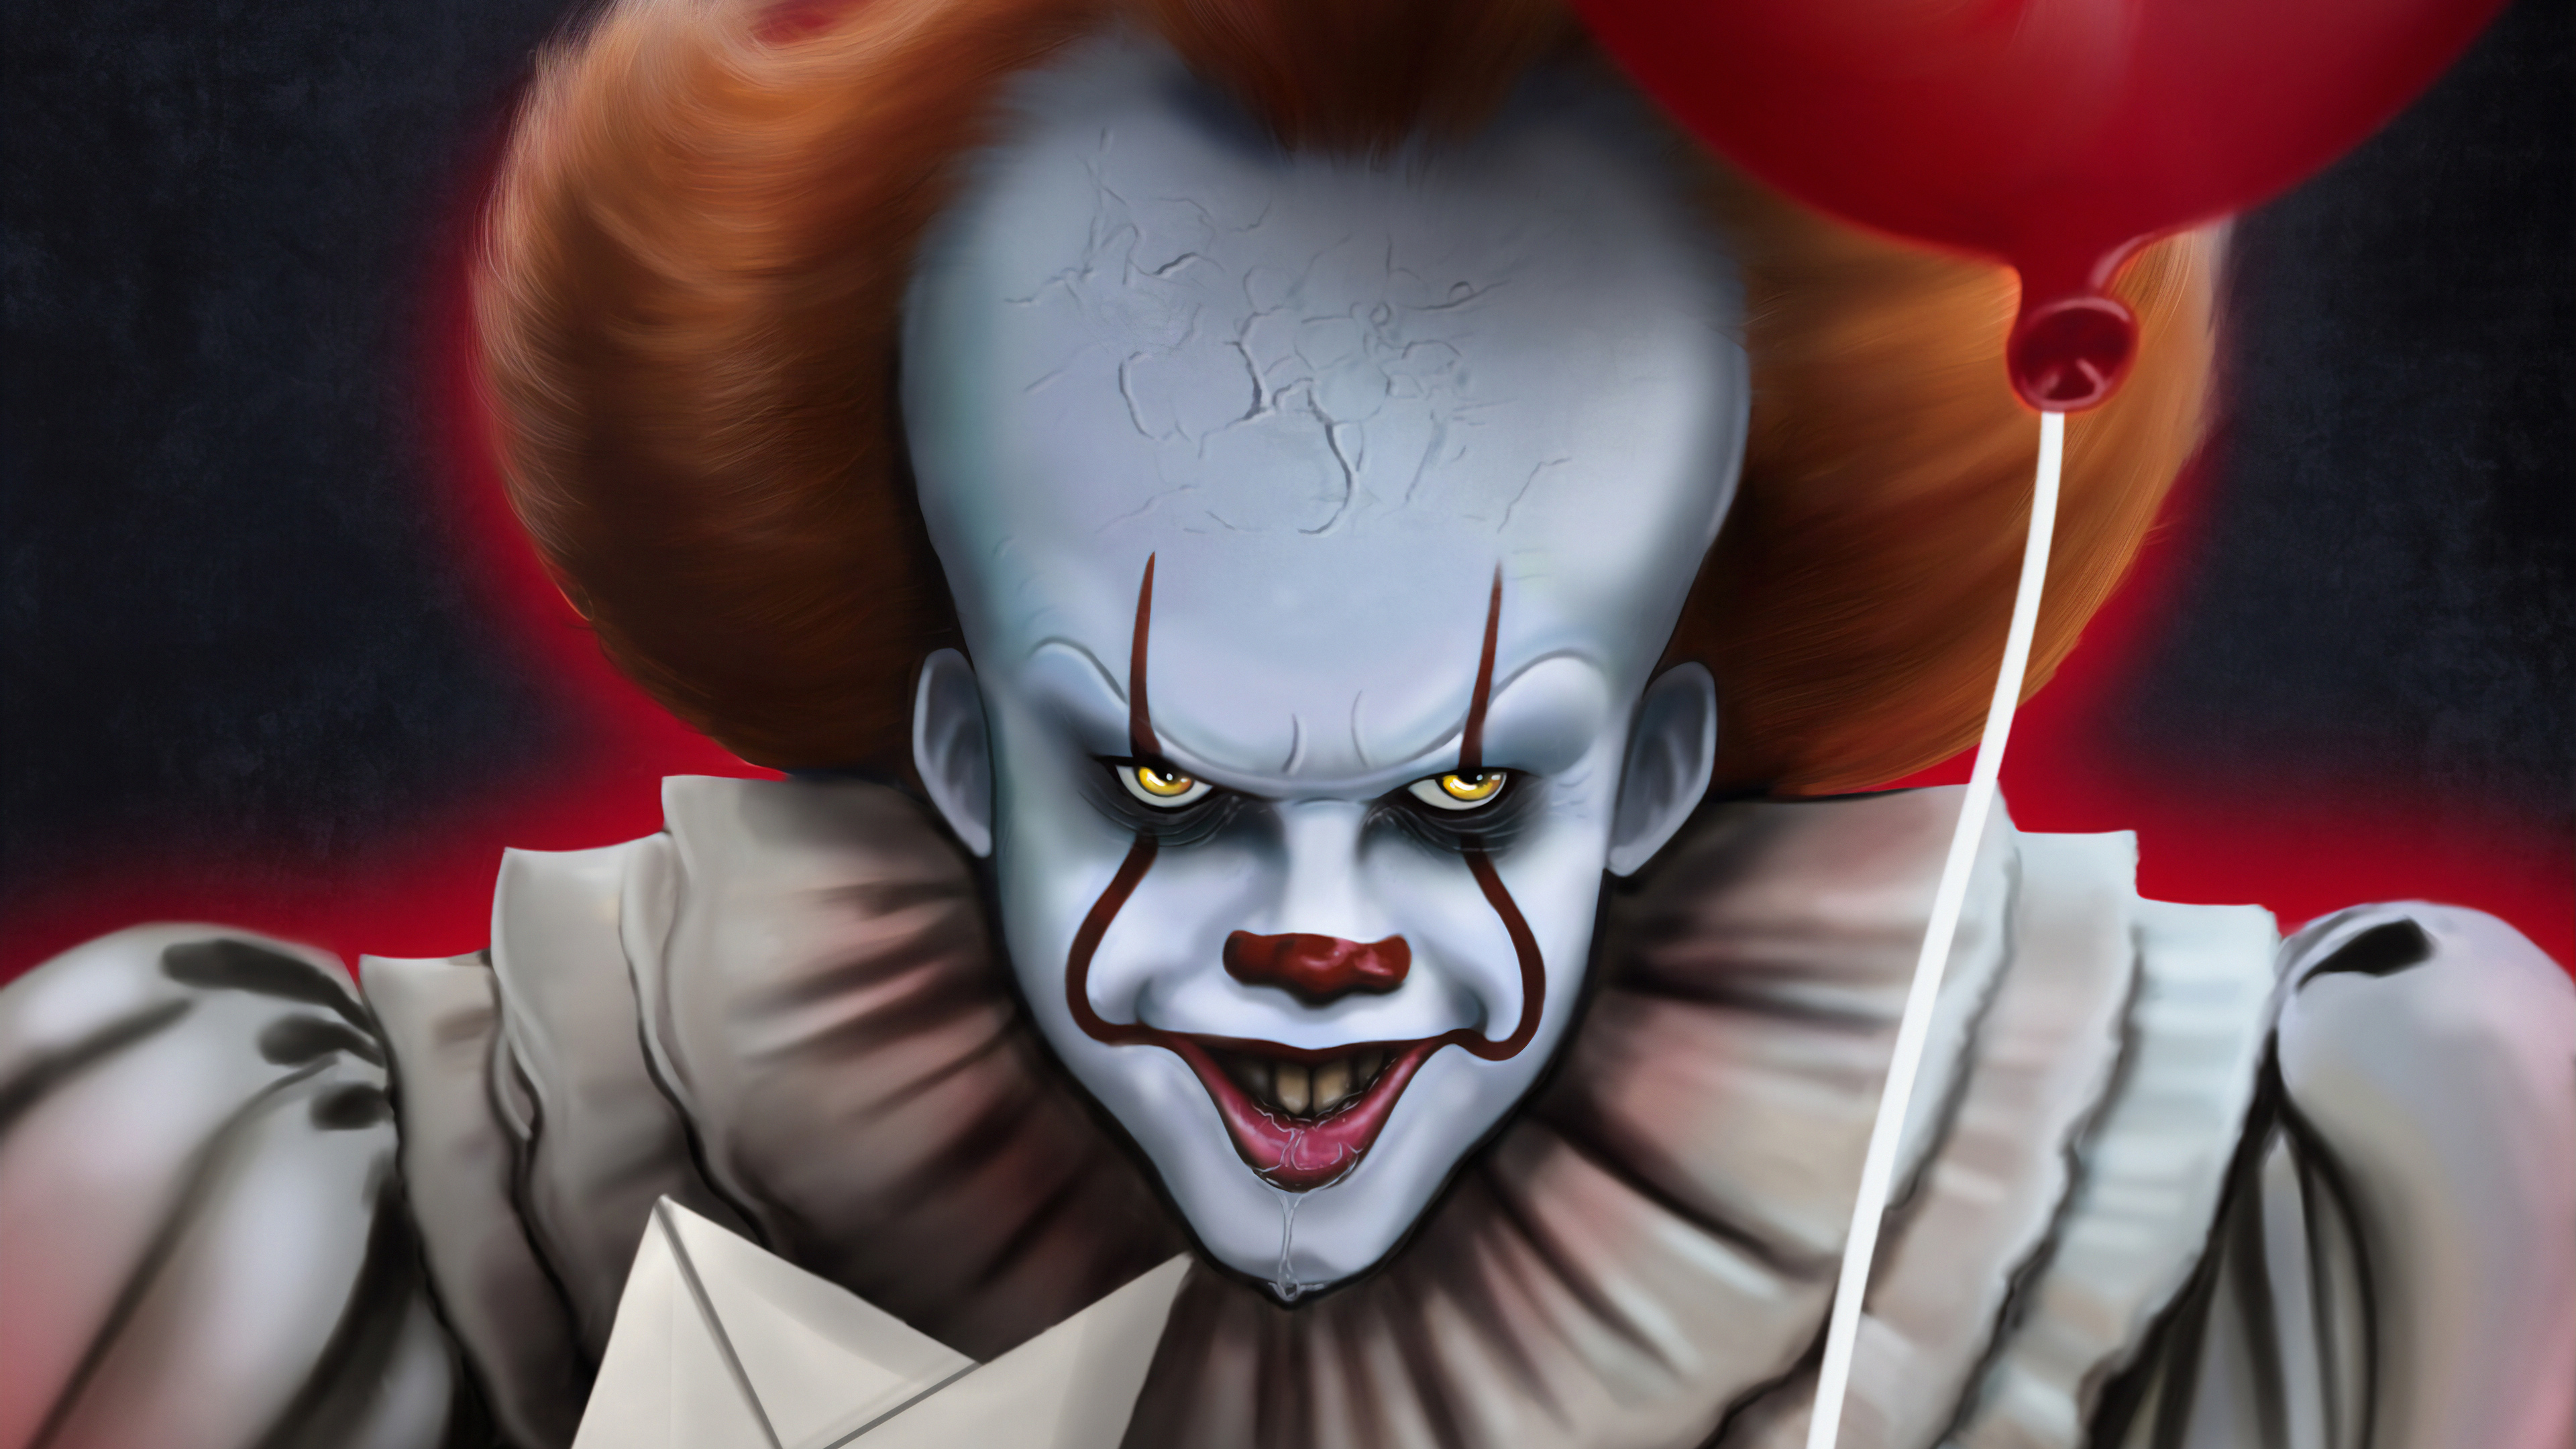 Wallpaper Of Art Clown It Chapter Two Pennywise Pennywise Hd 3036384 Hd Wallpaper Backgrounds Download